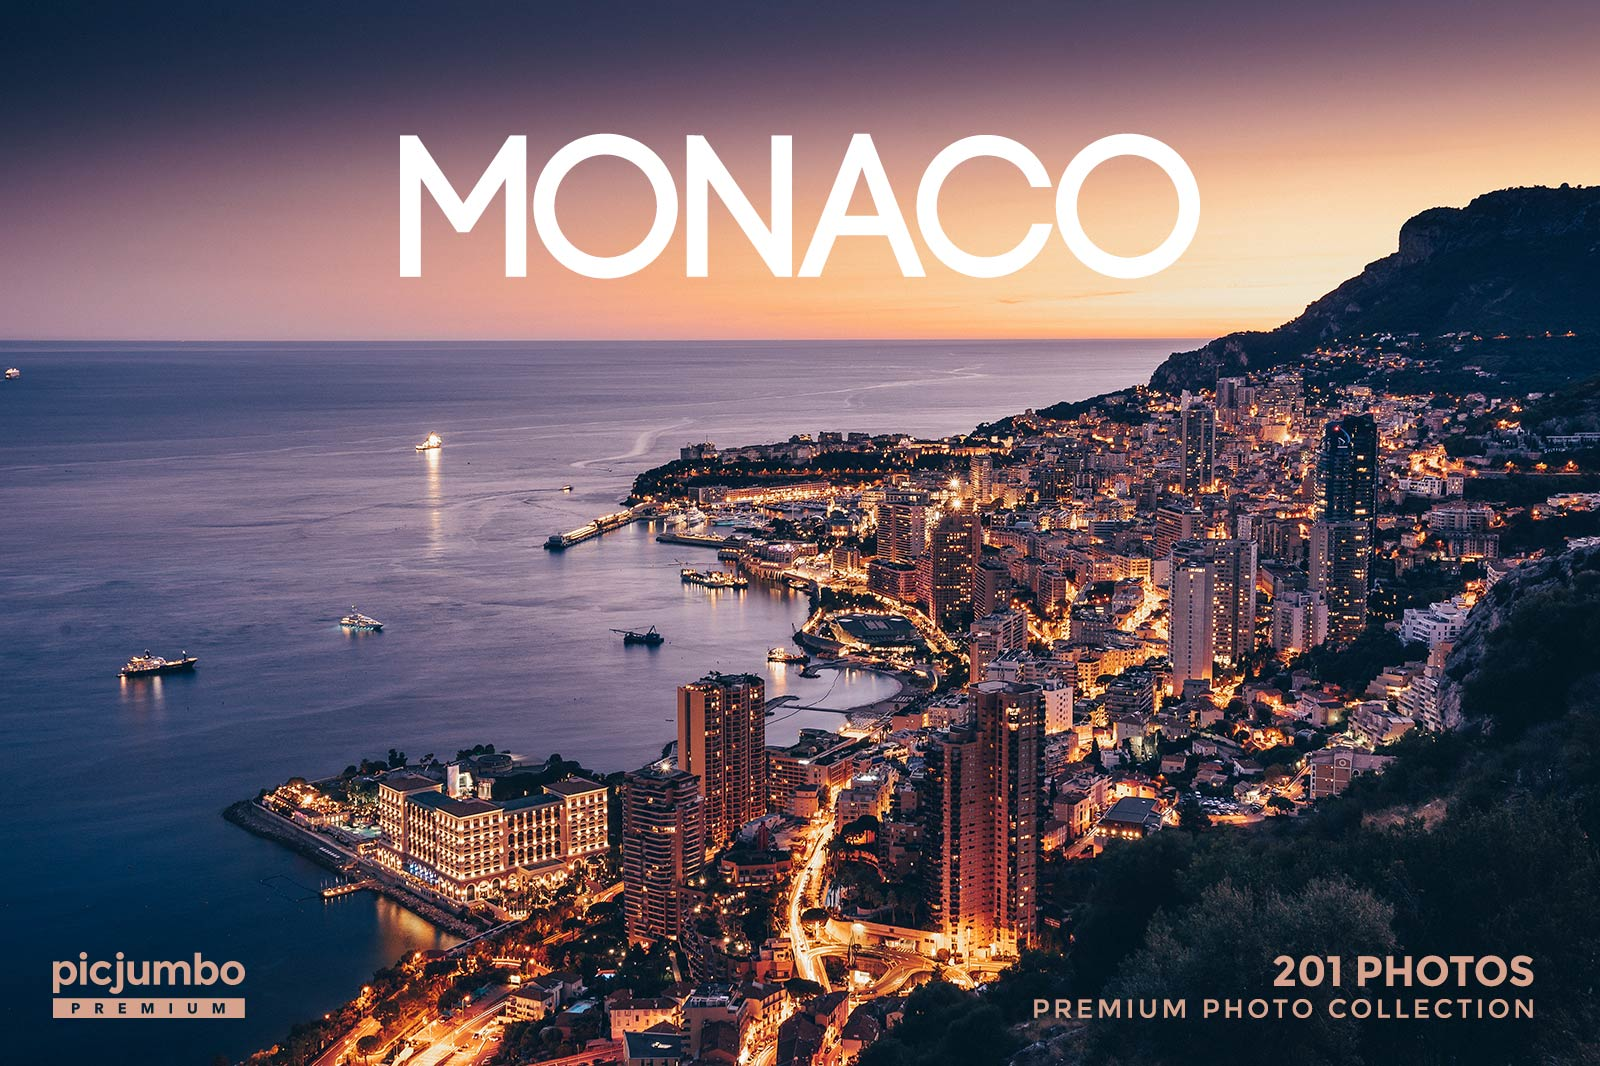 monaco-hires-photos-download.jpg